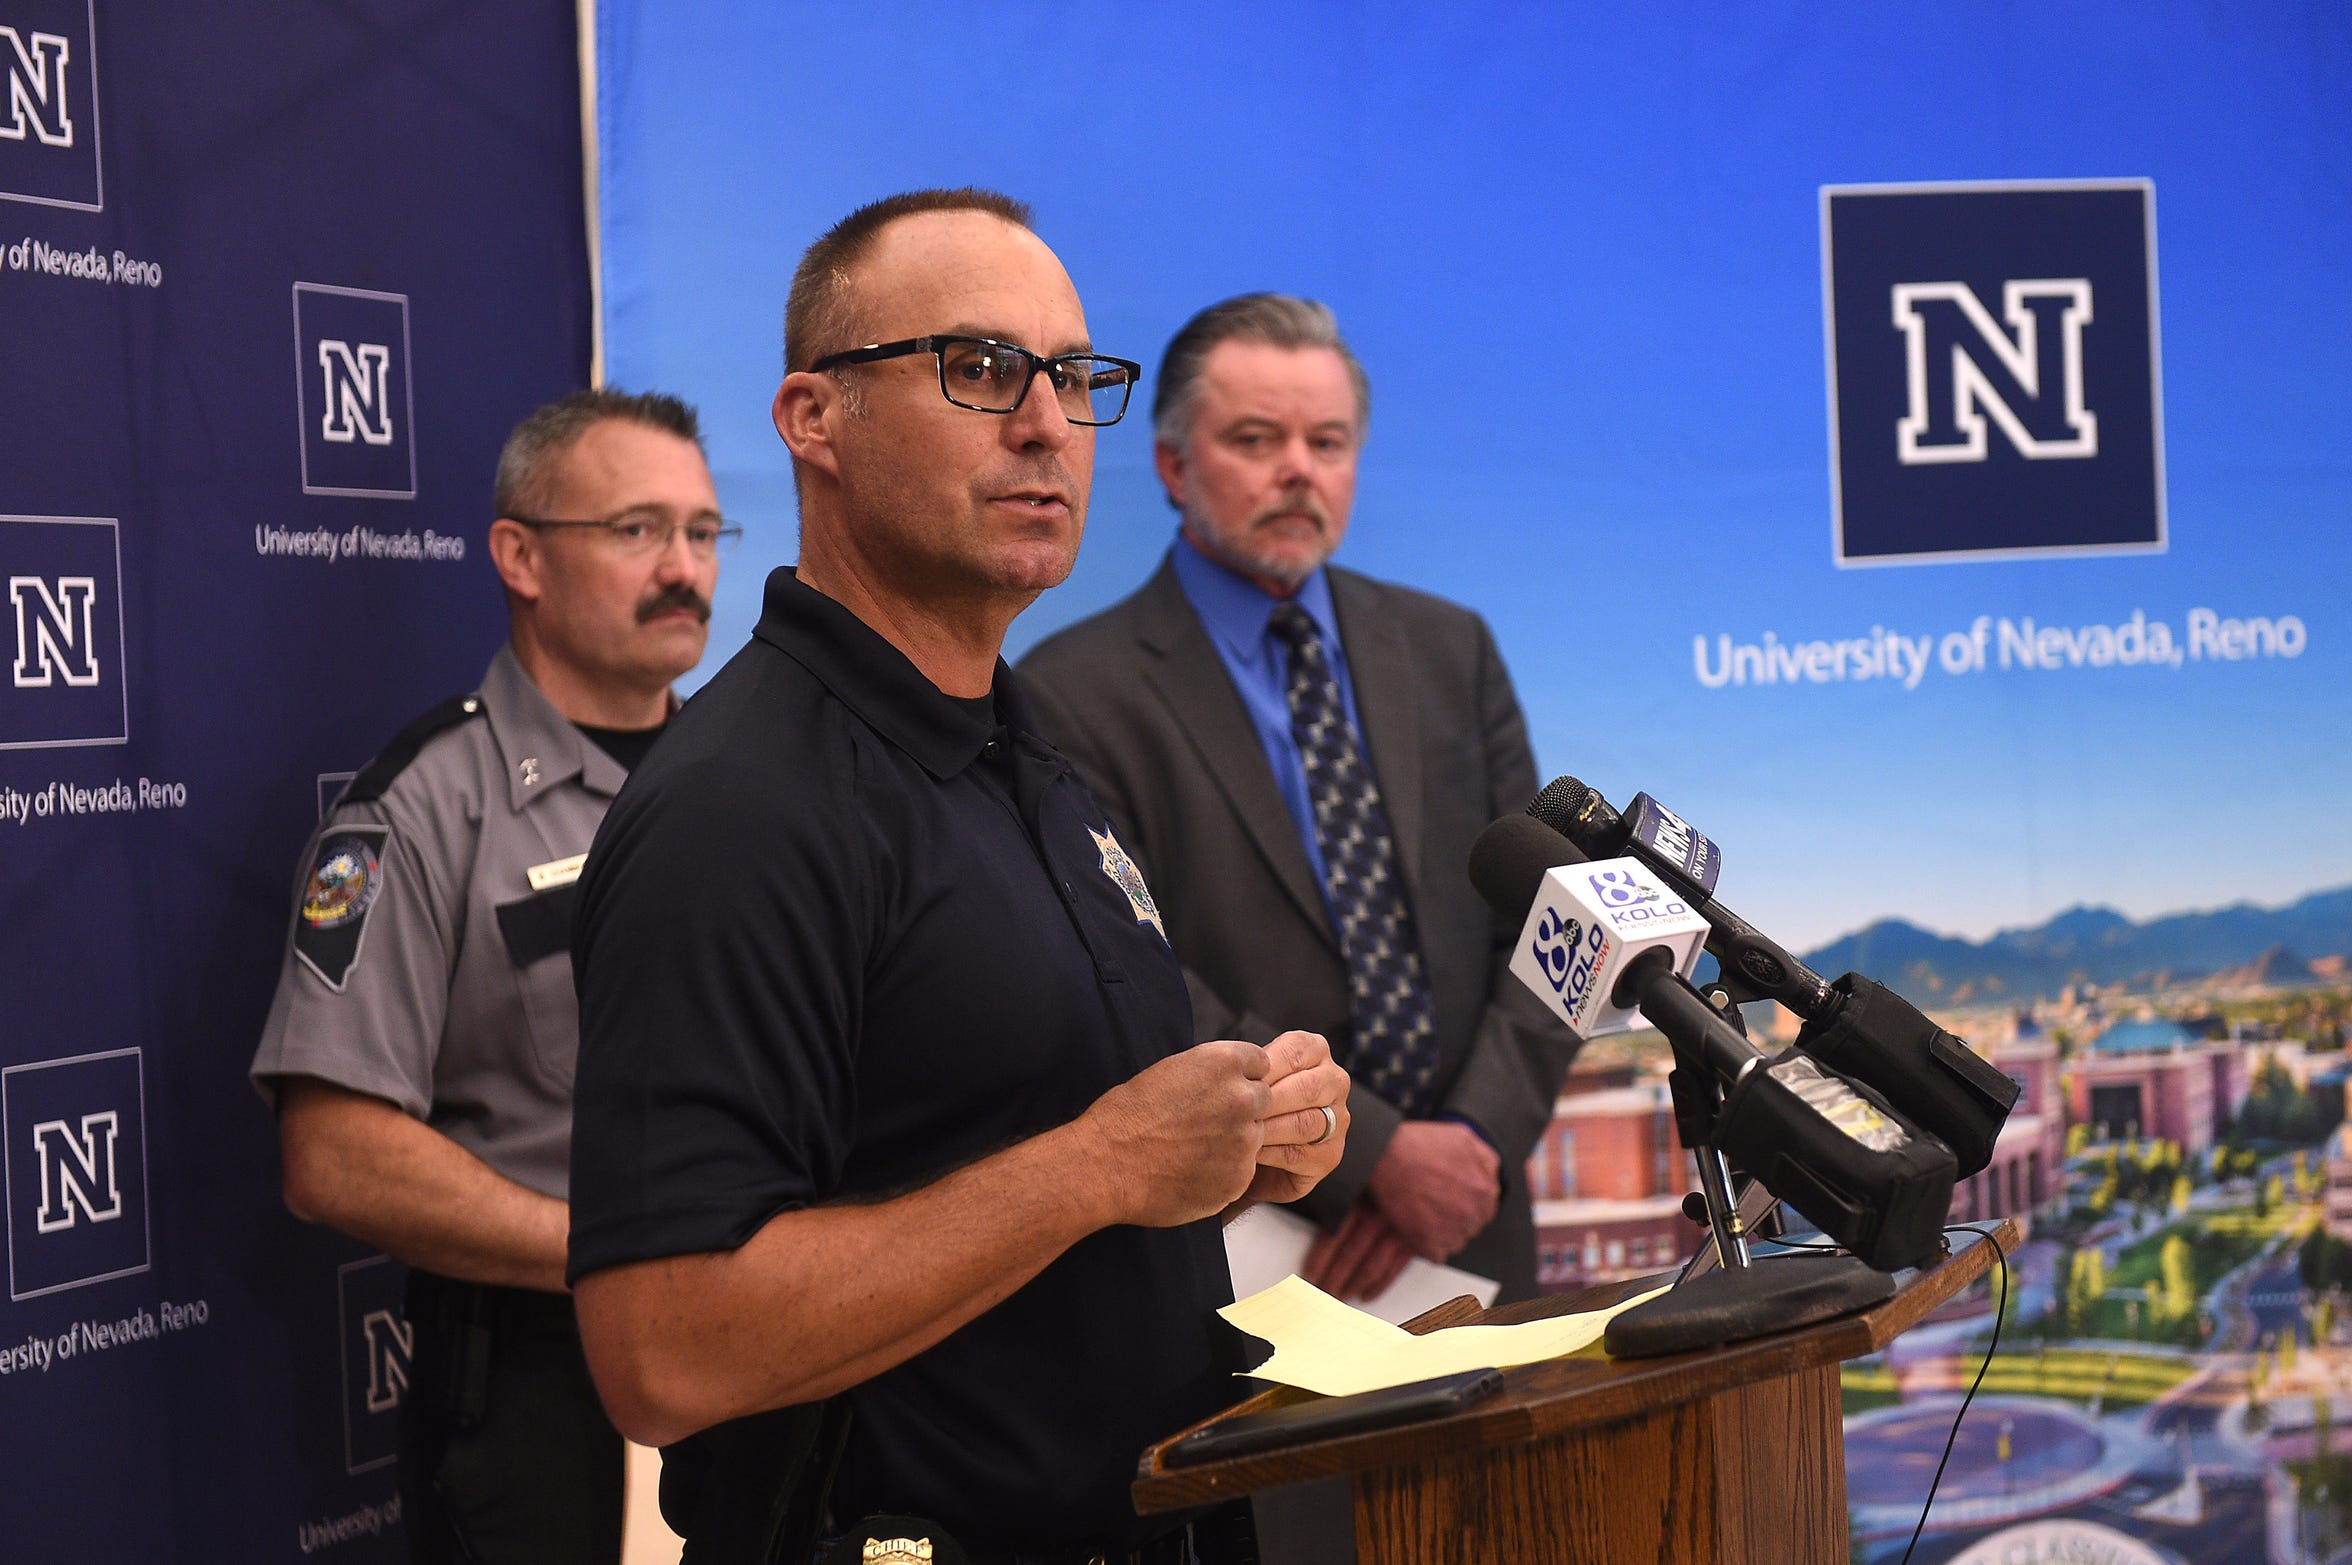 UNR Police Chief Todd Renwick speaks in regard to the explosion at Argenta Hall during a press conference on the campus of the University of Nevada, Reno on July 9, 2019.